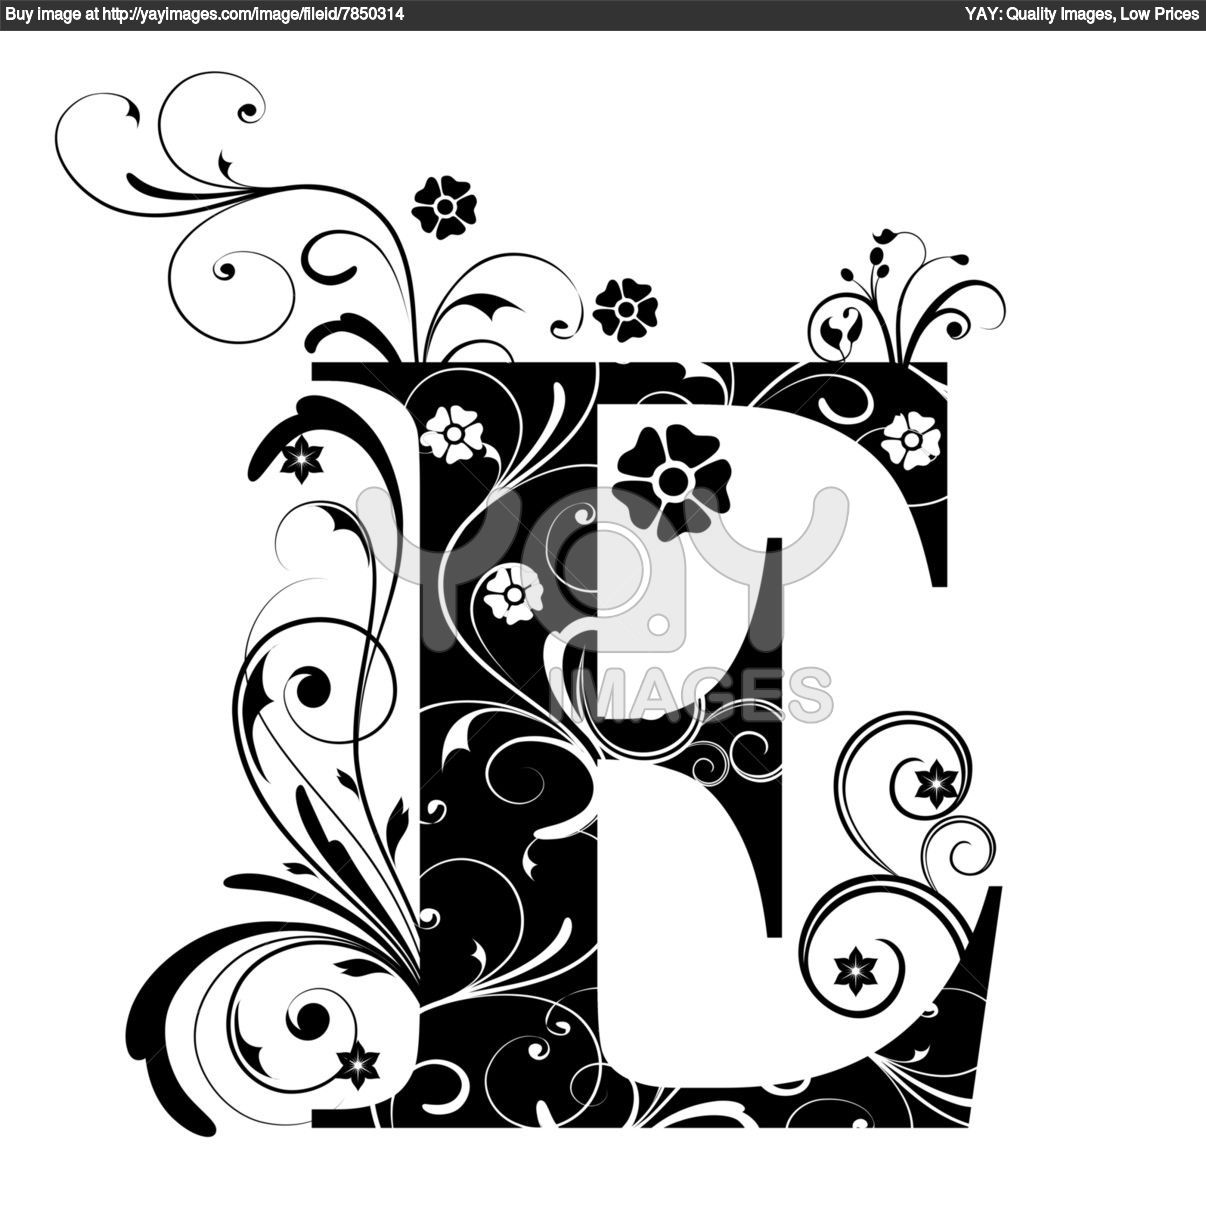 Printable letter e coloring pages -  Printable Letter E Coloring Page Coloring Pages Download